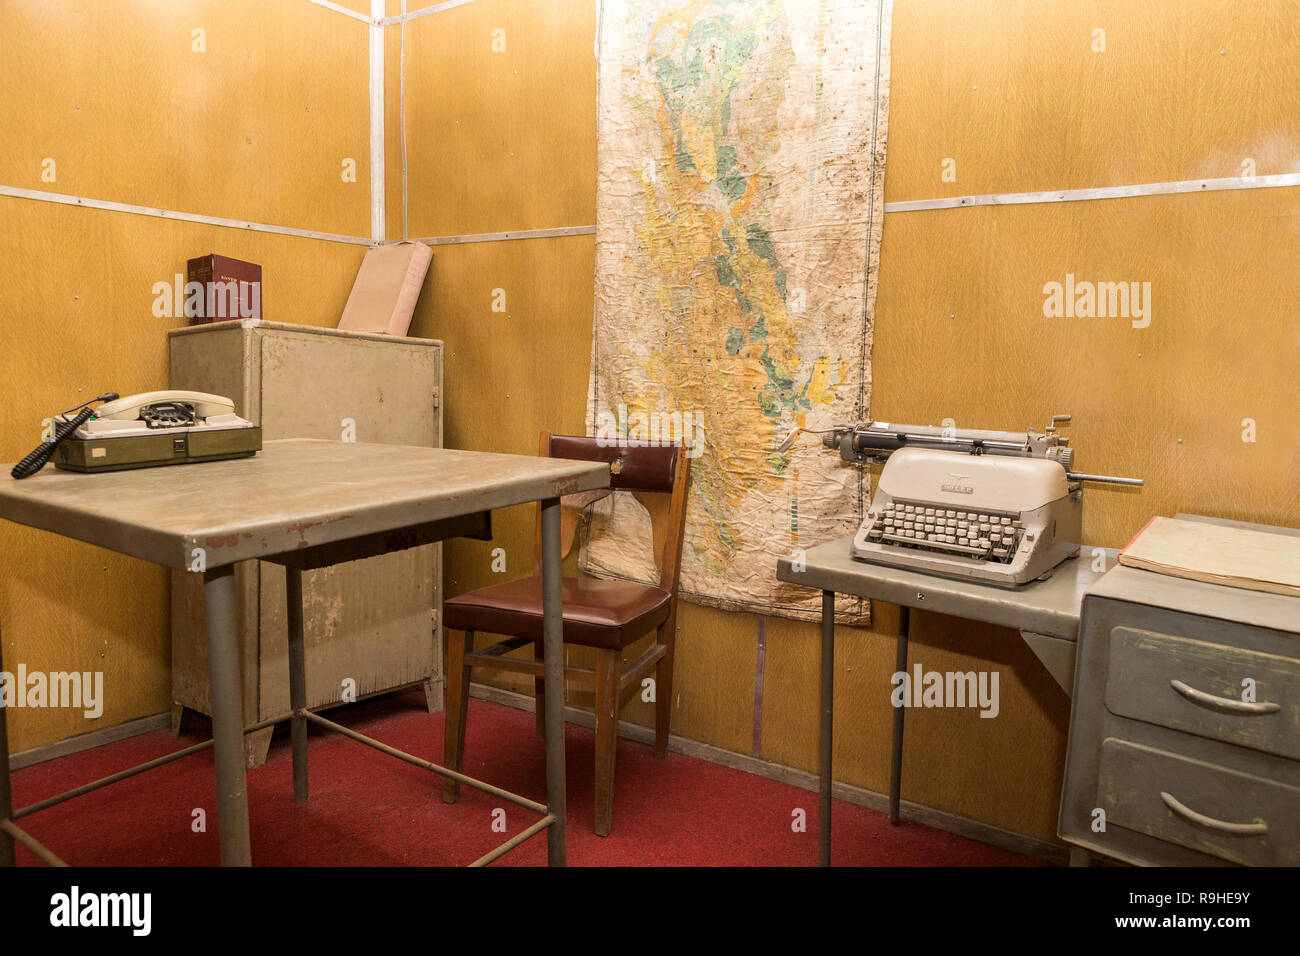 Offices Bunk'Art nuclear bunker Tirana Albania - Stock Image